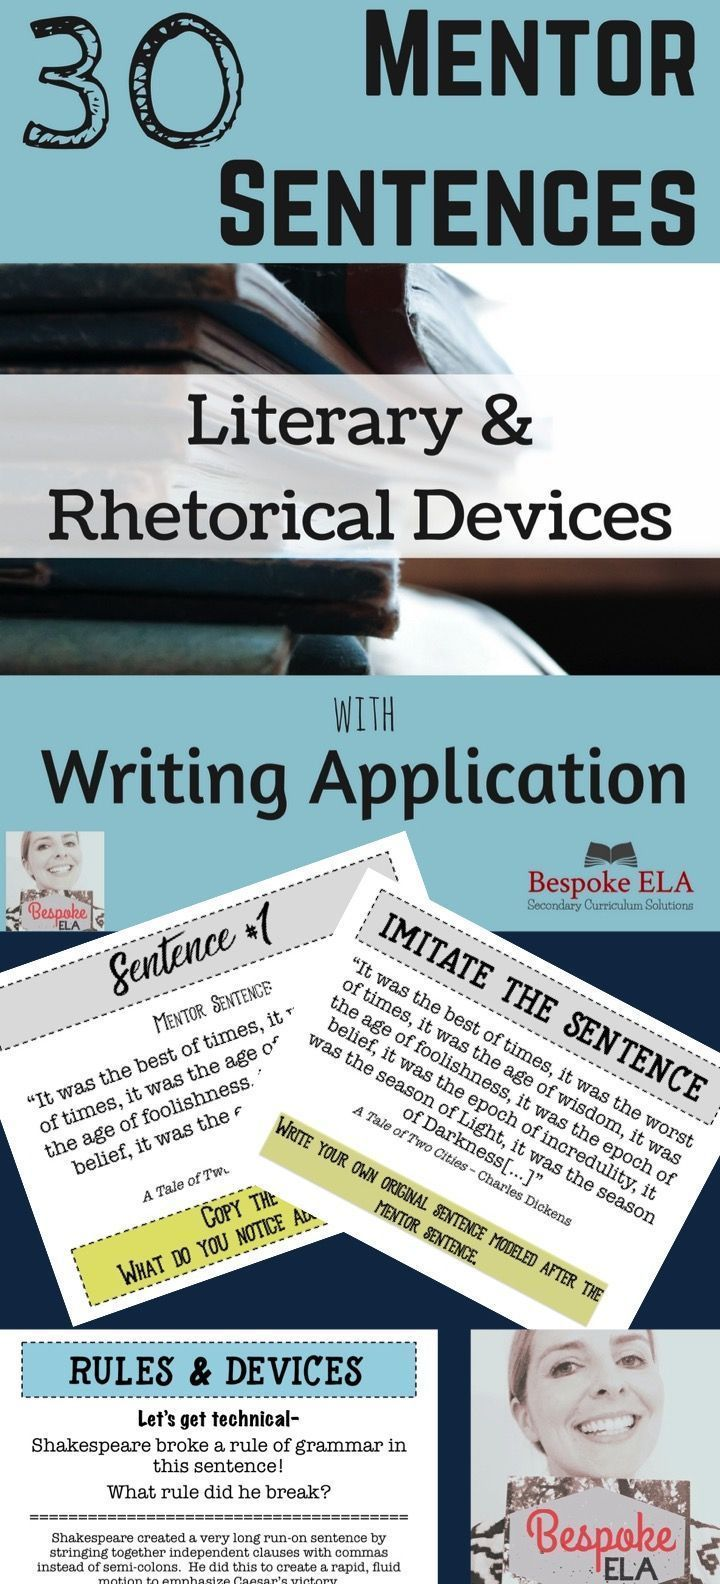 This product is a POWER POINT that contains 30 MENTOR SENTENCES from famous classic writers to model key literary terms, rhetorical devices, and syntactical structures for students.  For each sentence, students are to copy the sentence, make observations, imitate the sentence, and apply to writing revisions.  Great for high school English Language Arts.  by Bespoke ELA